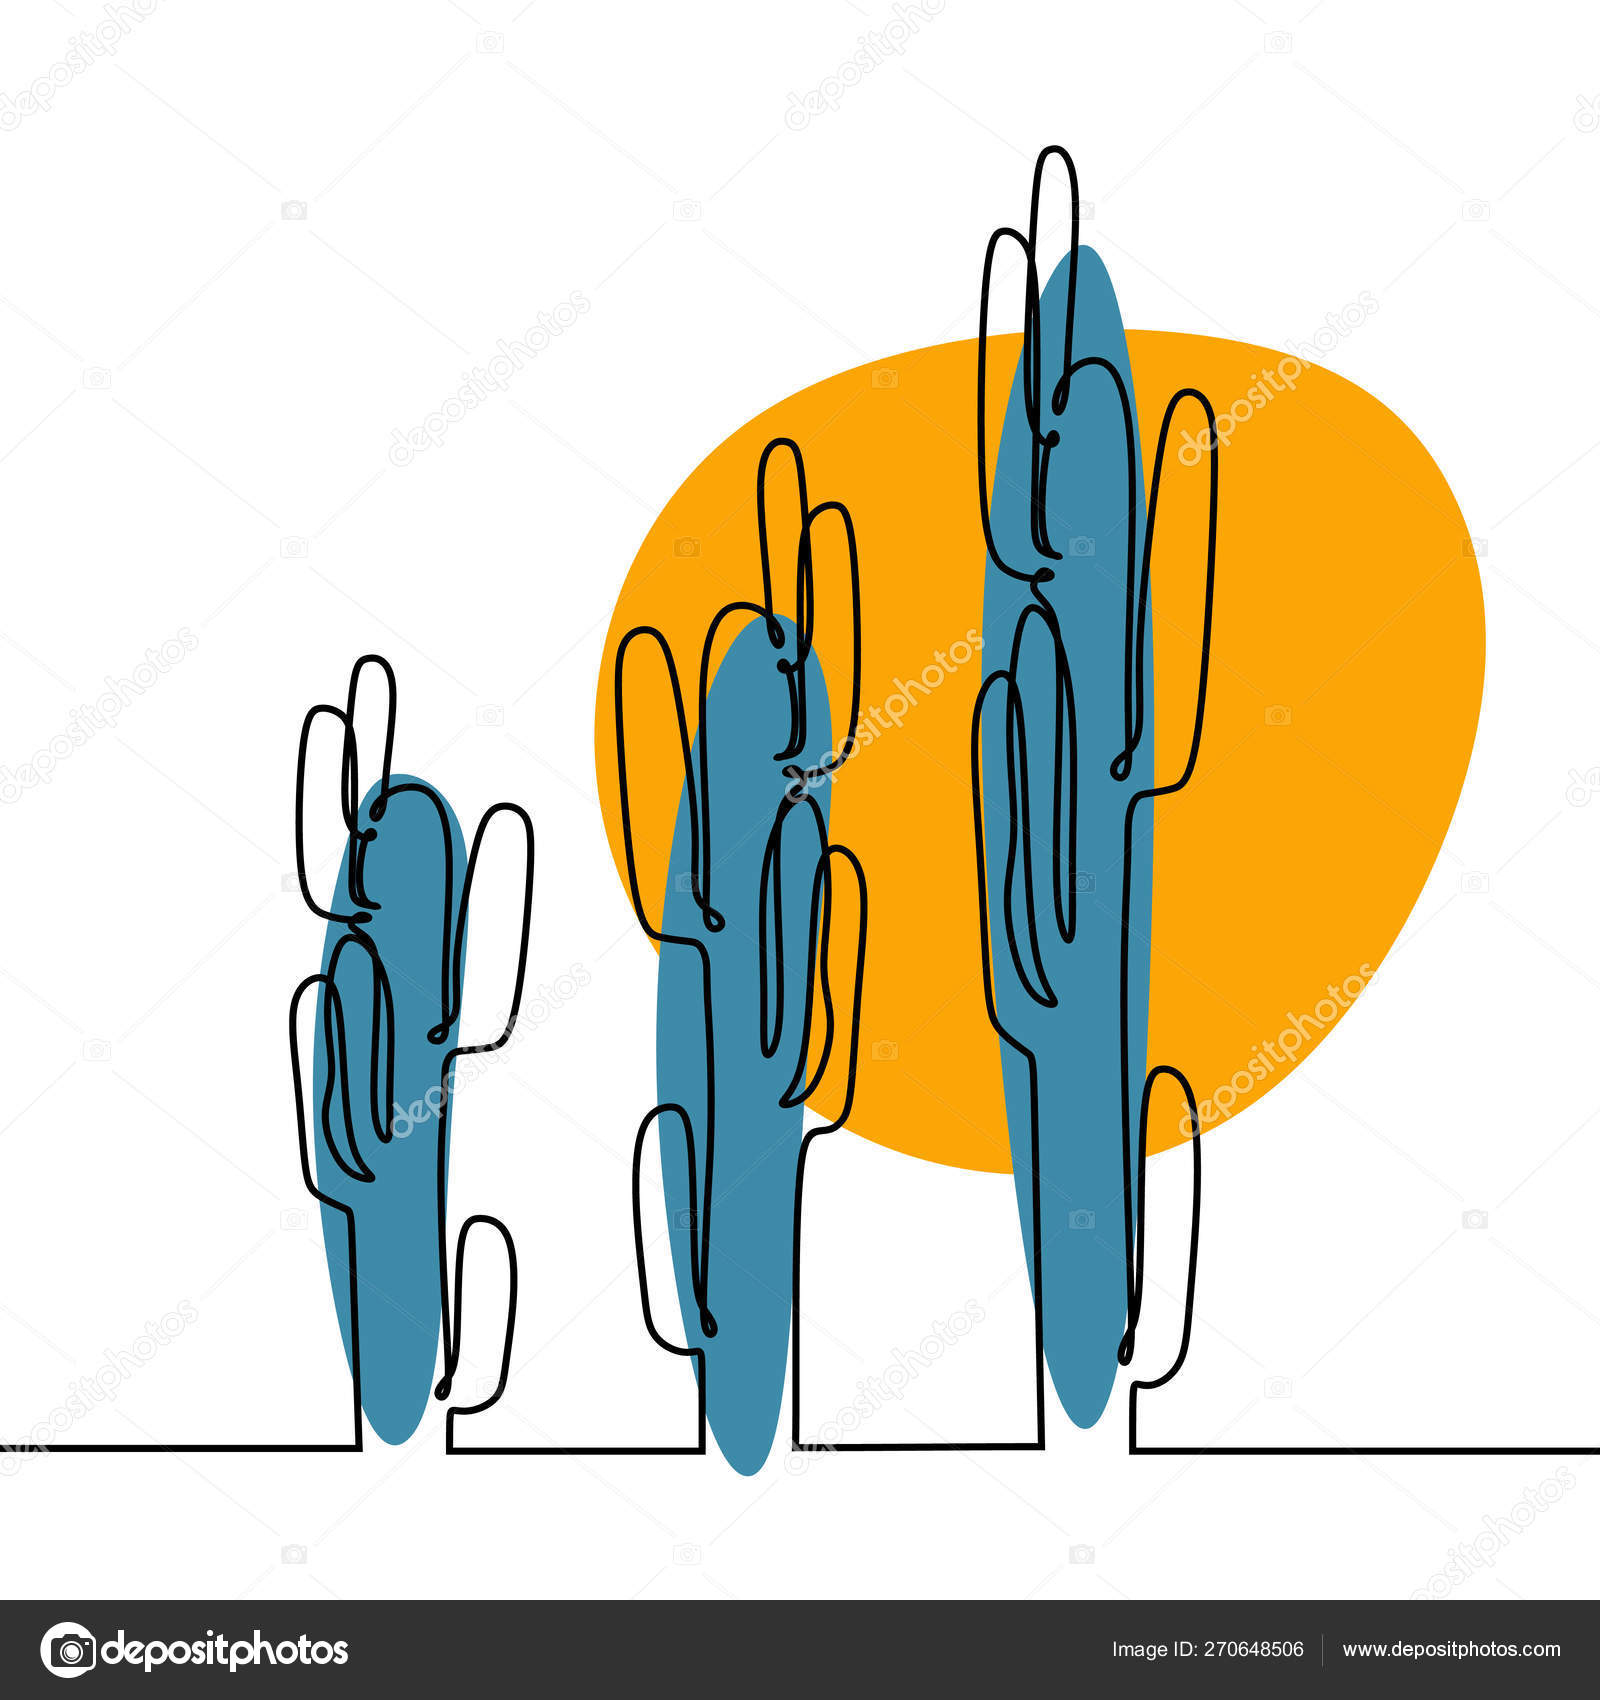 One Line Drawing Of Cactus And Succulent Continuous Minimalism Design Vector Image By C Ngupakarti Vector Stock 270648506